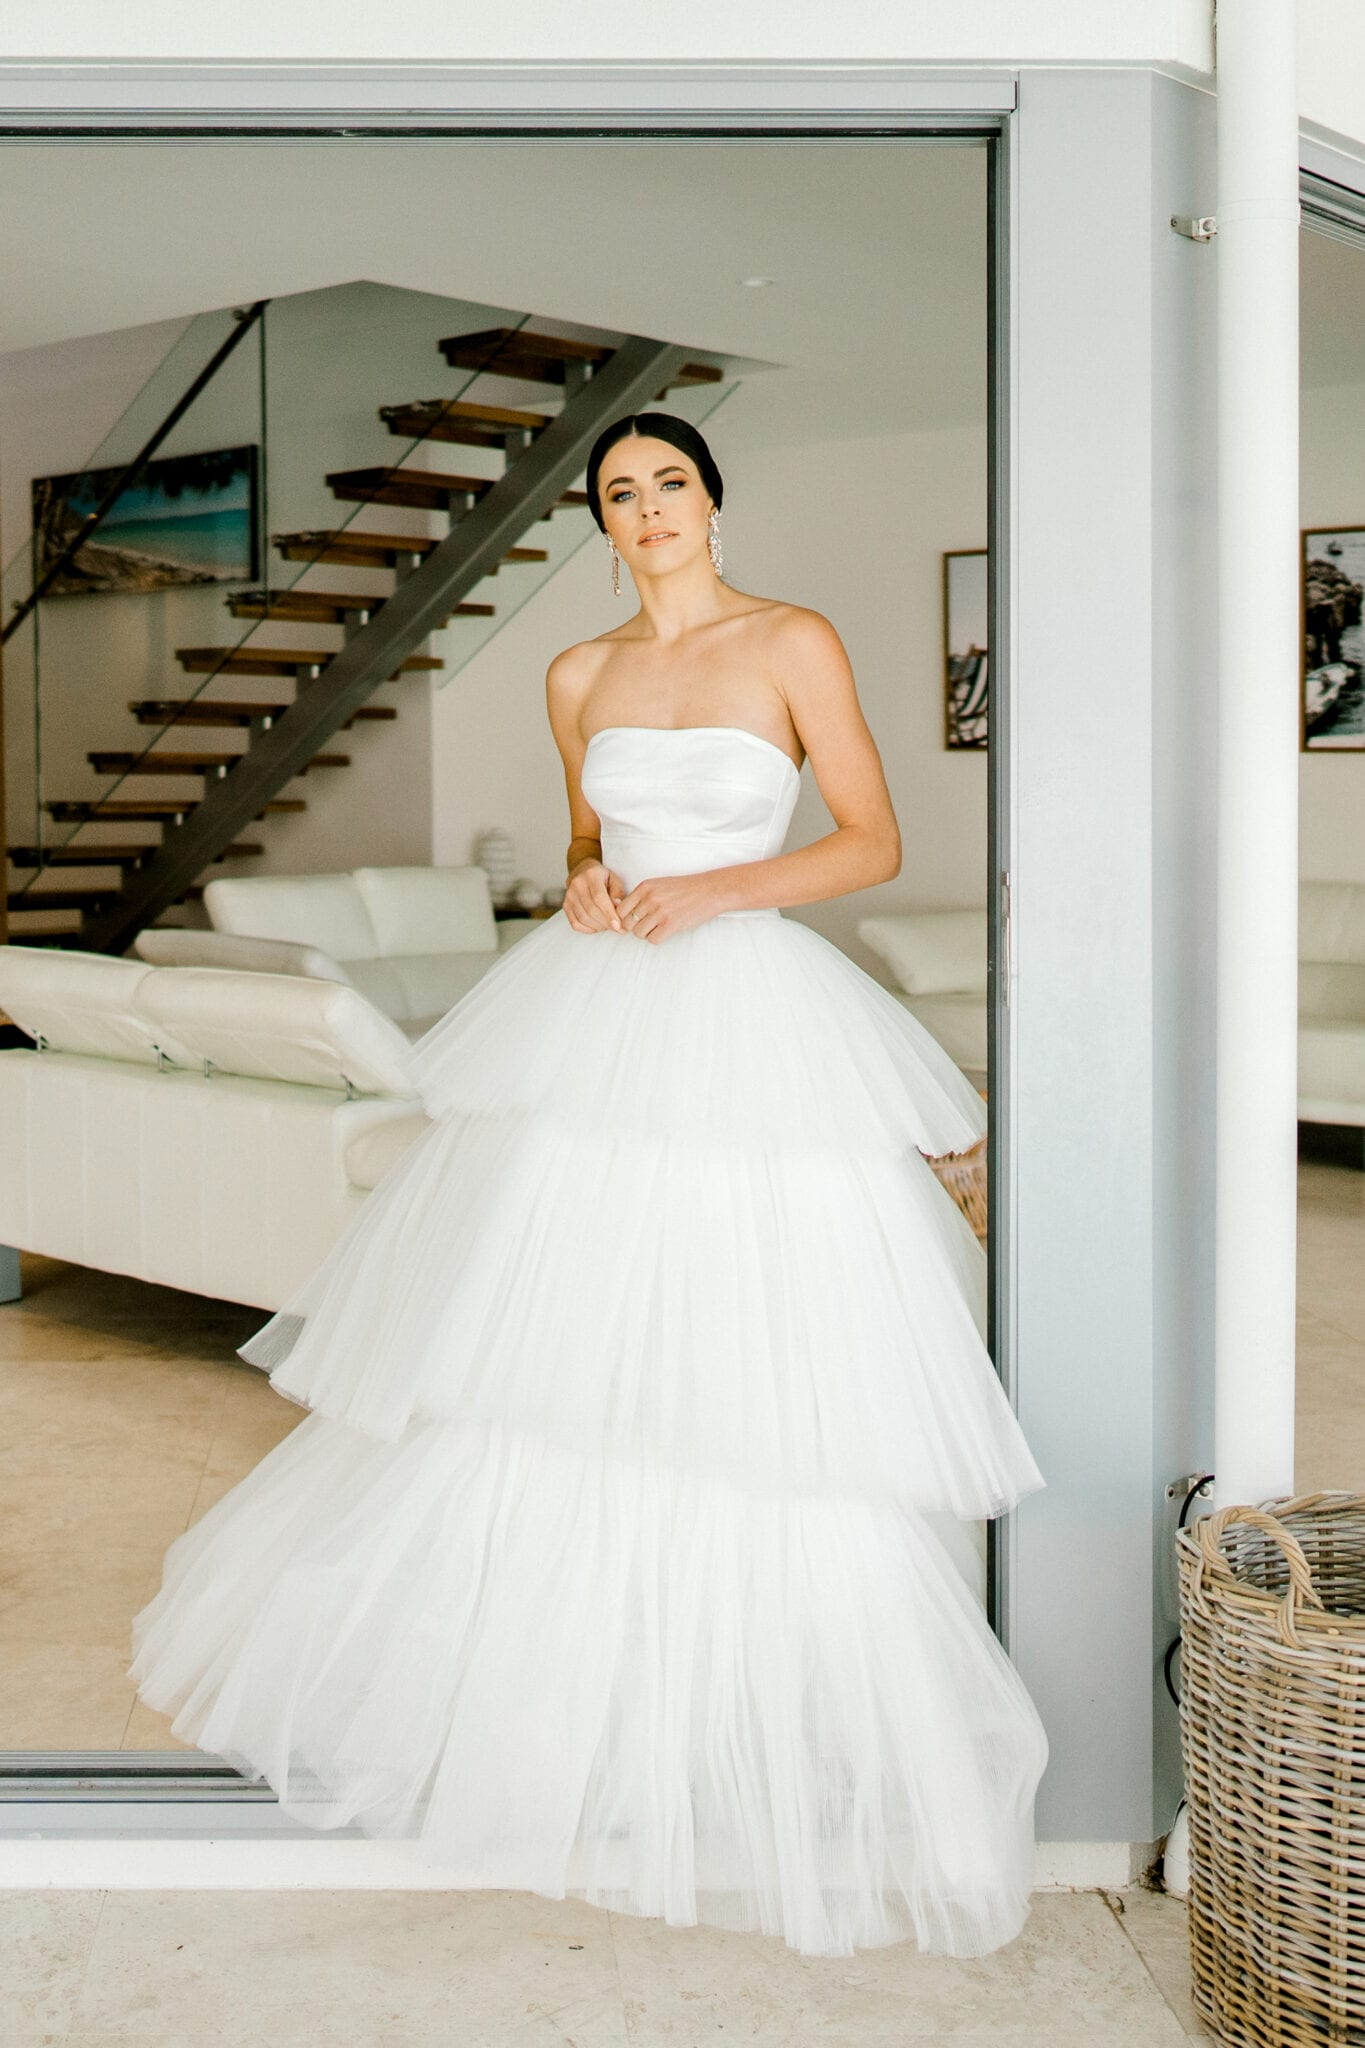 ELLIE-Rosa-Clara-Couture-Tulle-Ballgown-Luxury-White-Lily-Couture-Brisbane (5)